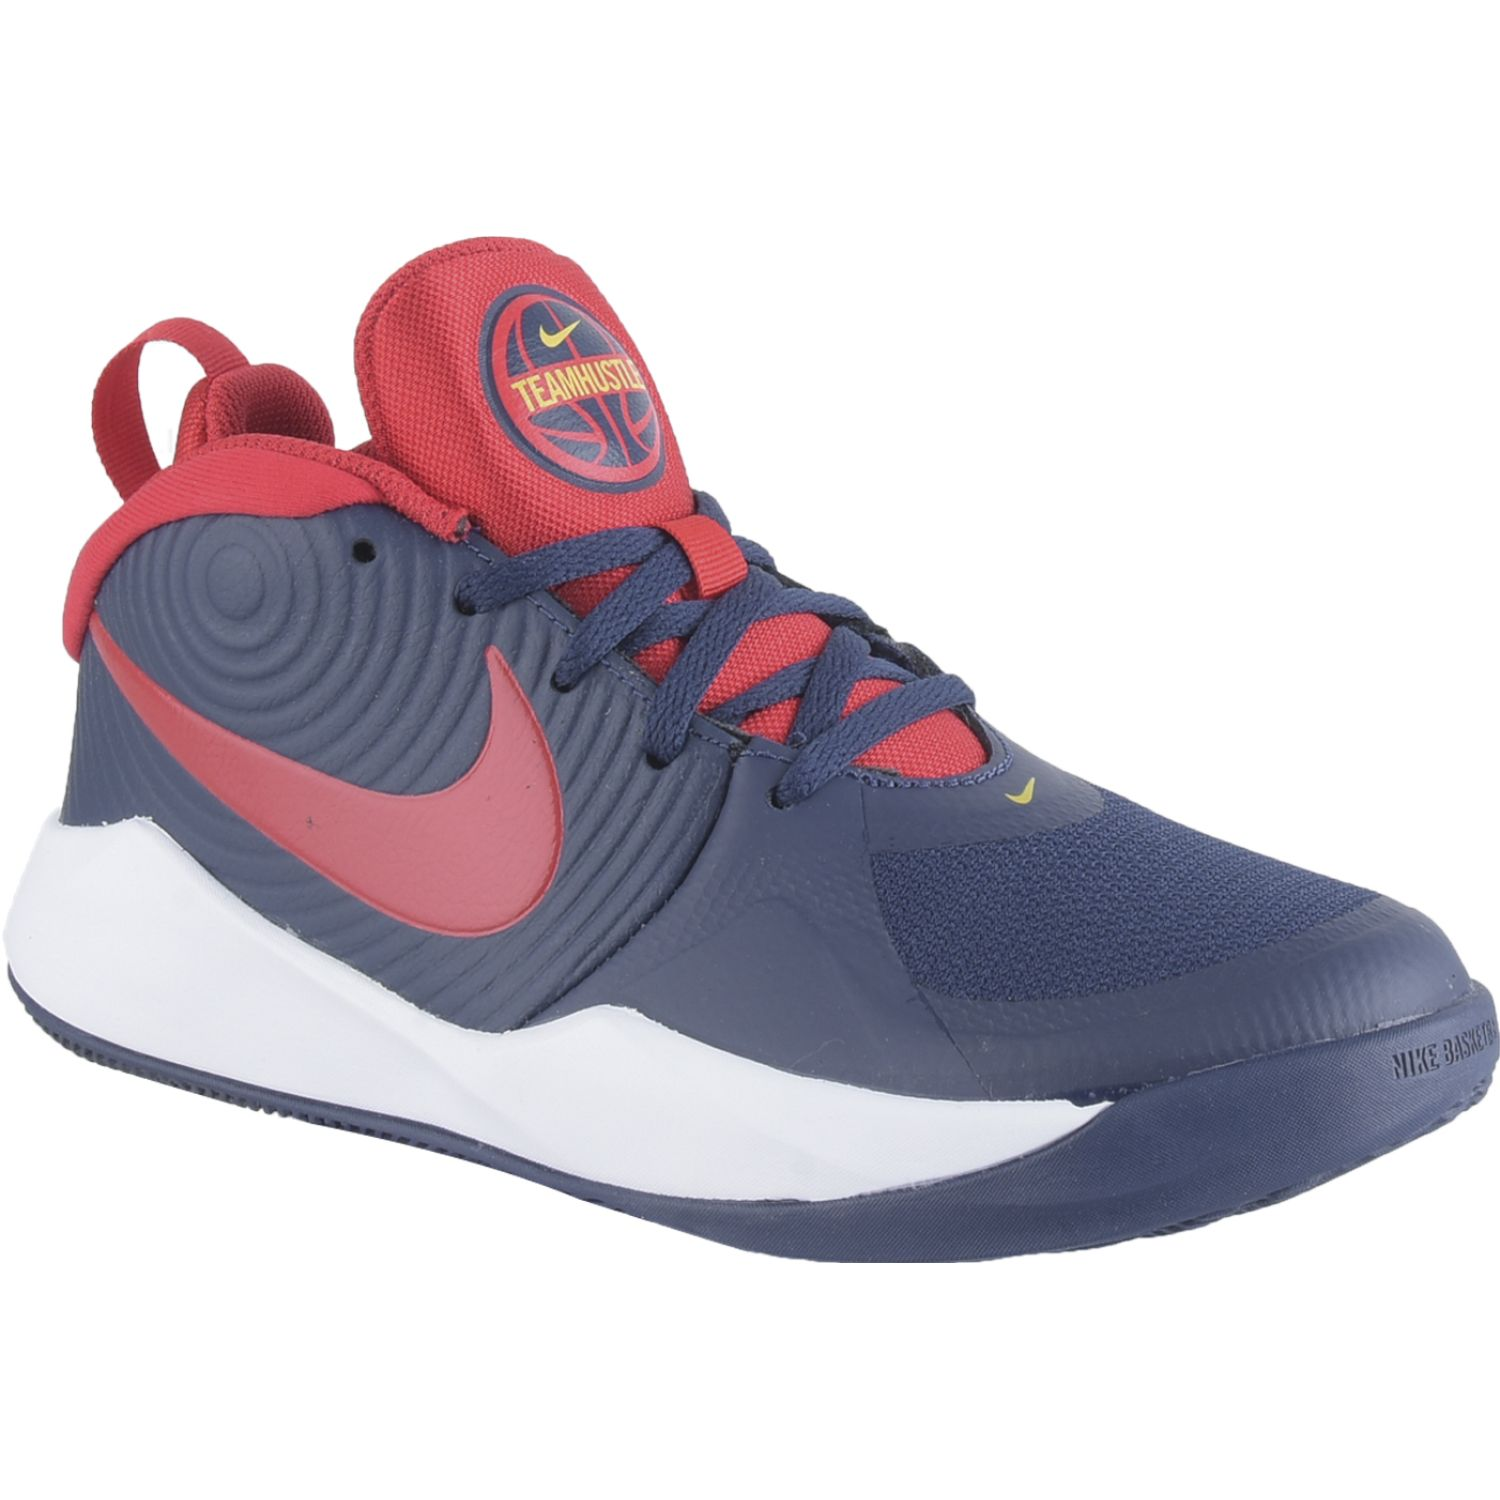 Nike TEAM HUSTLE D 9 GS Azul / rojo Walking